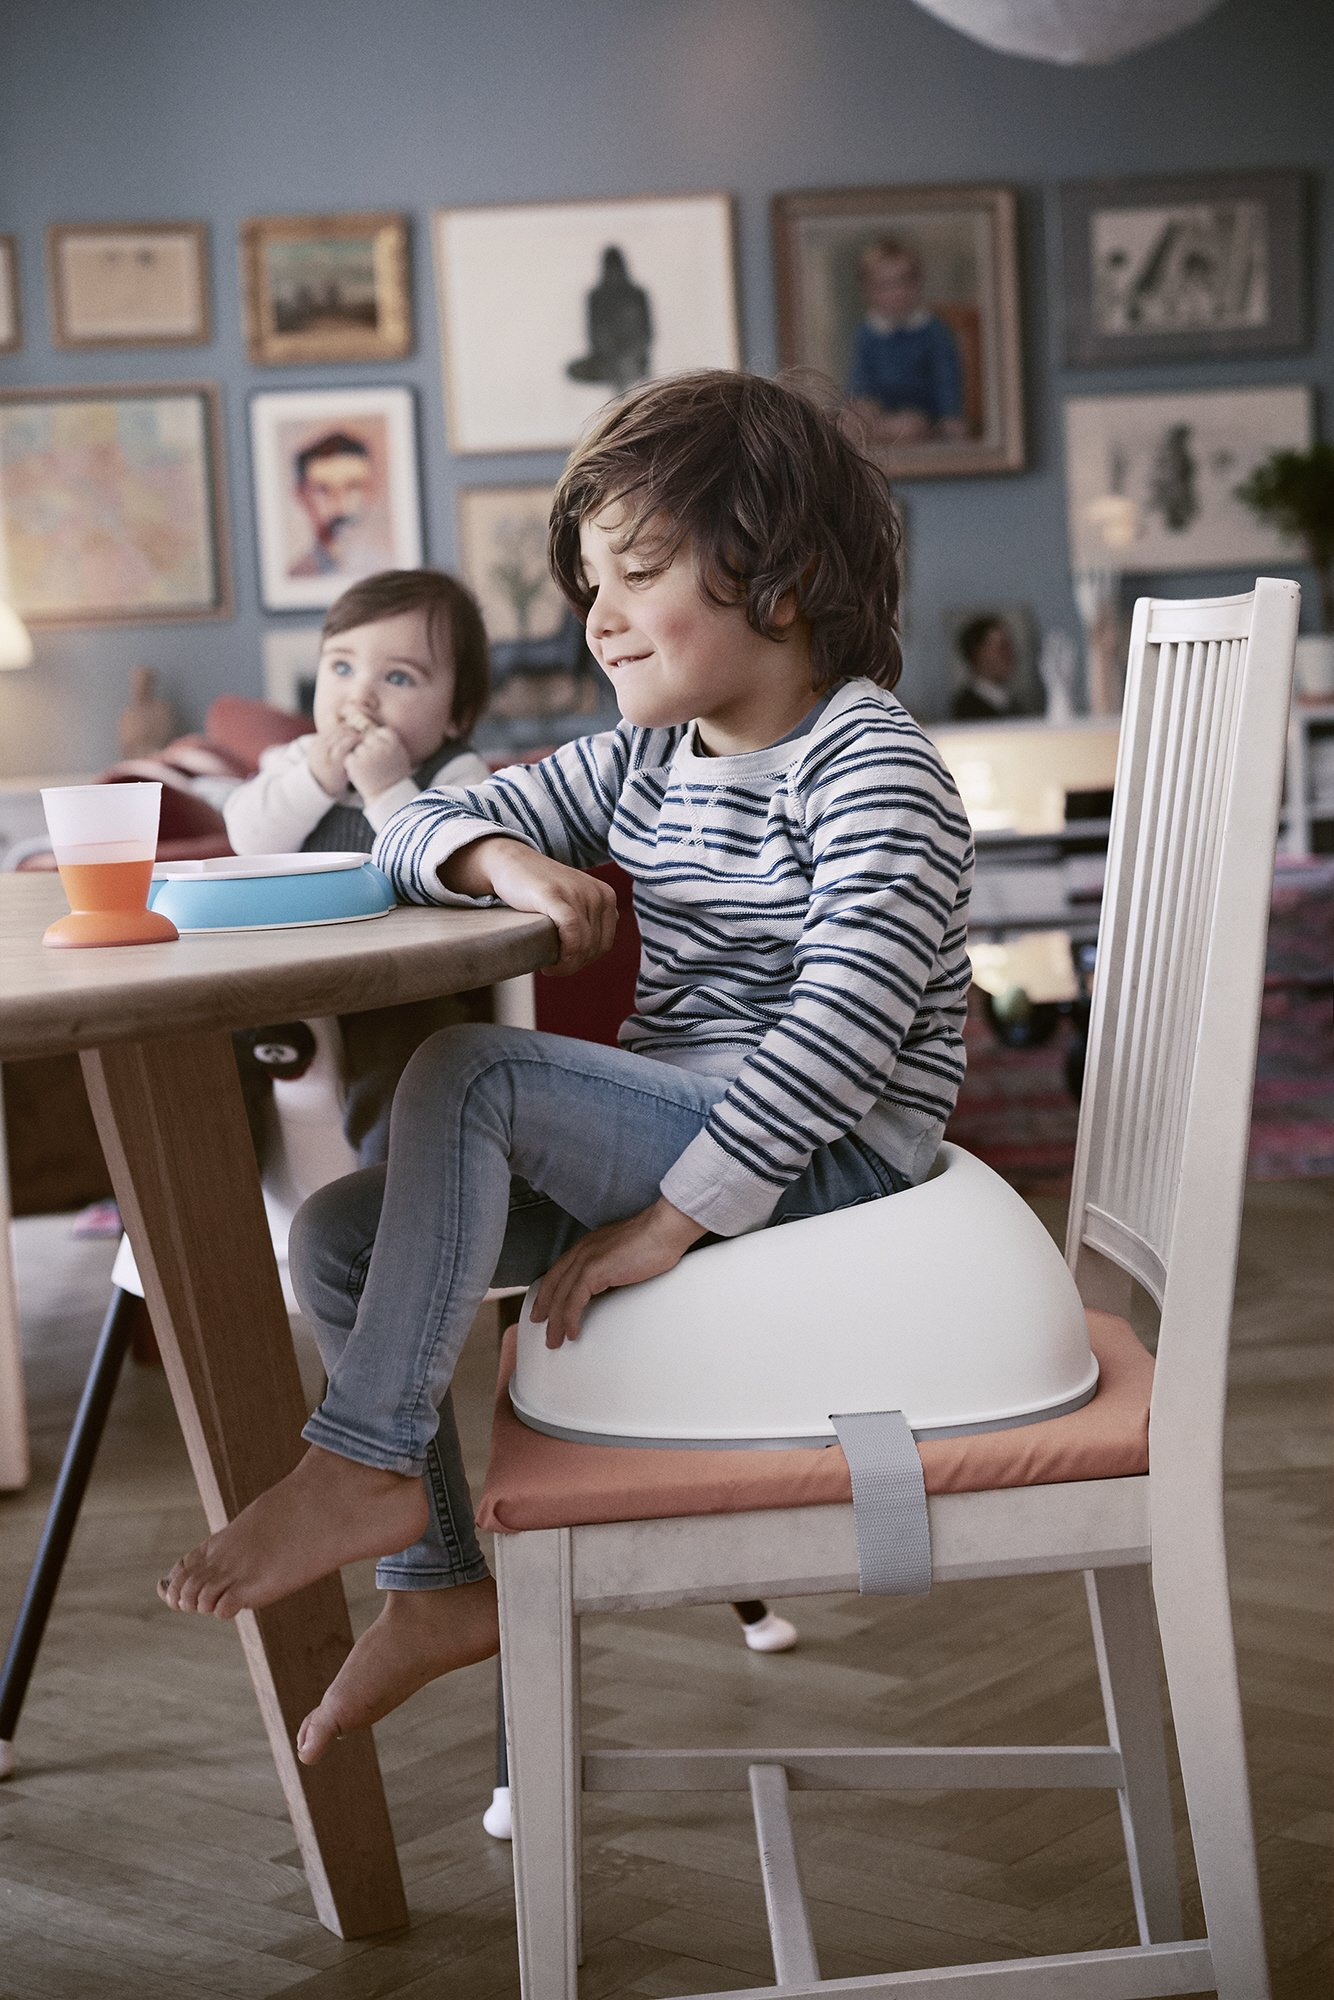 BABYBJÖRN Booster Seat, White Baby Bjorn A practical booster seat Small and portable Easy to clean 10